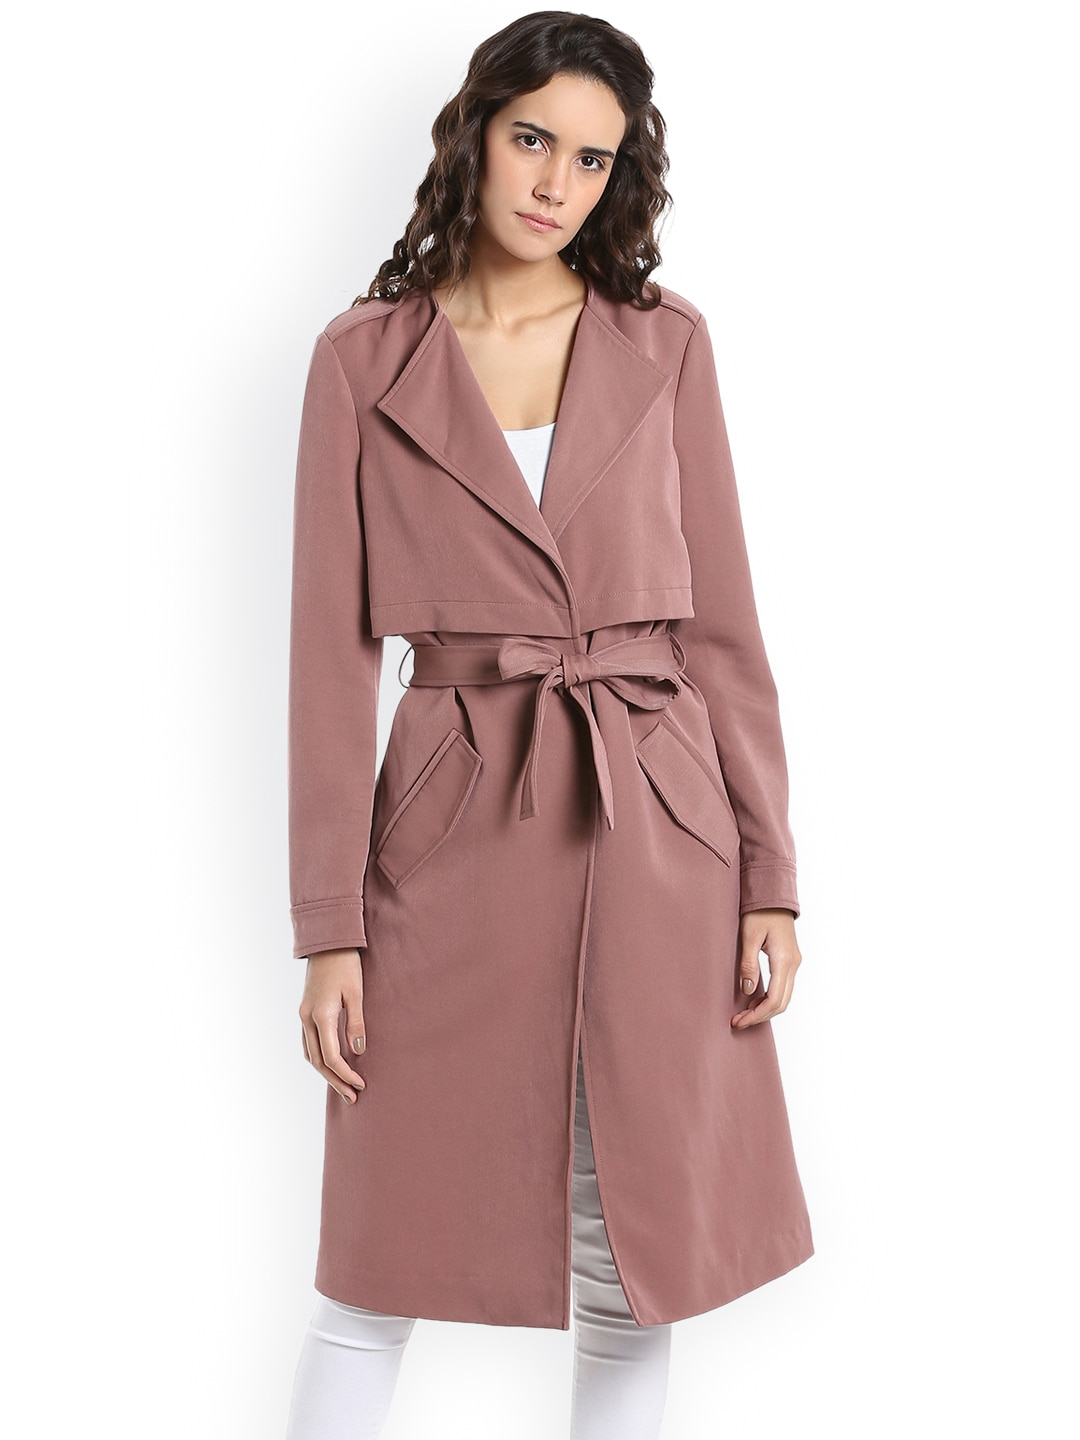 8f0451e08511d Trench Coats - Buy Trench Coats online in India